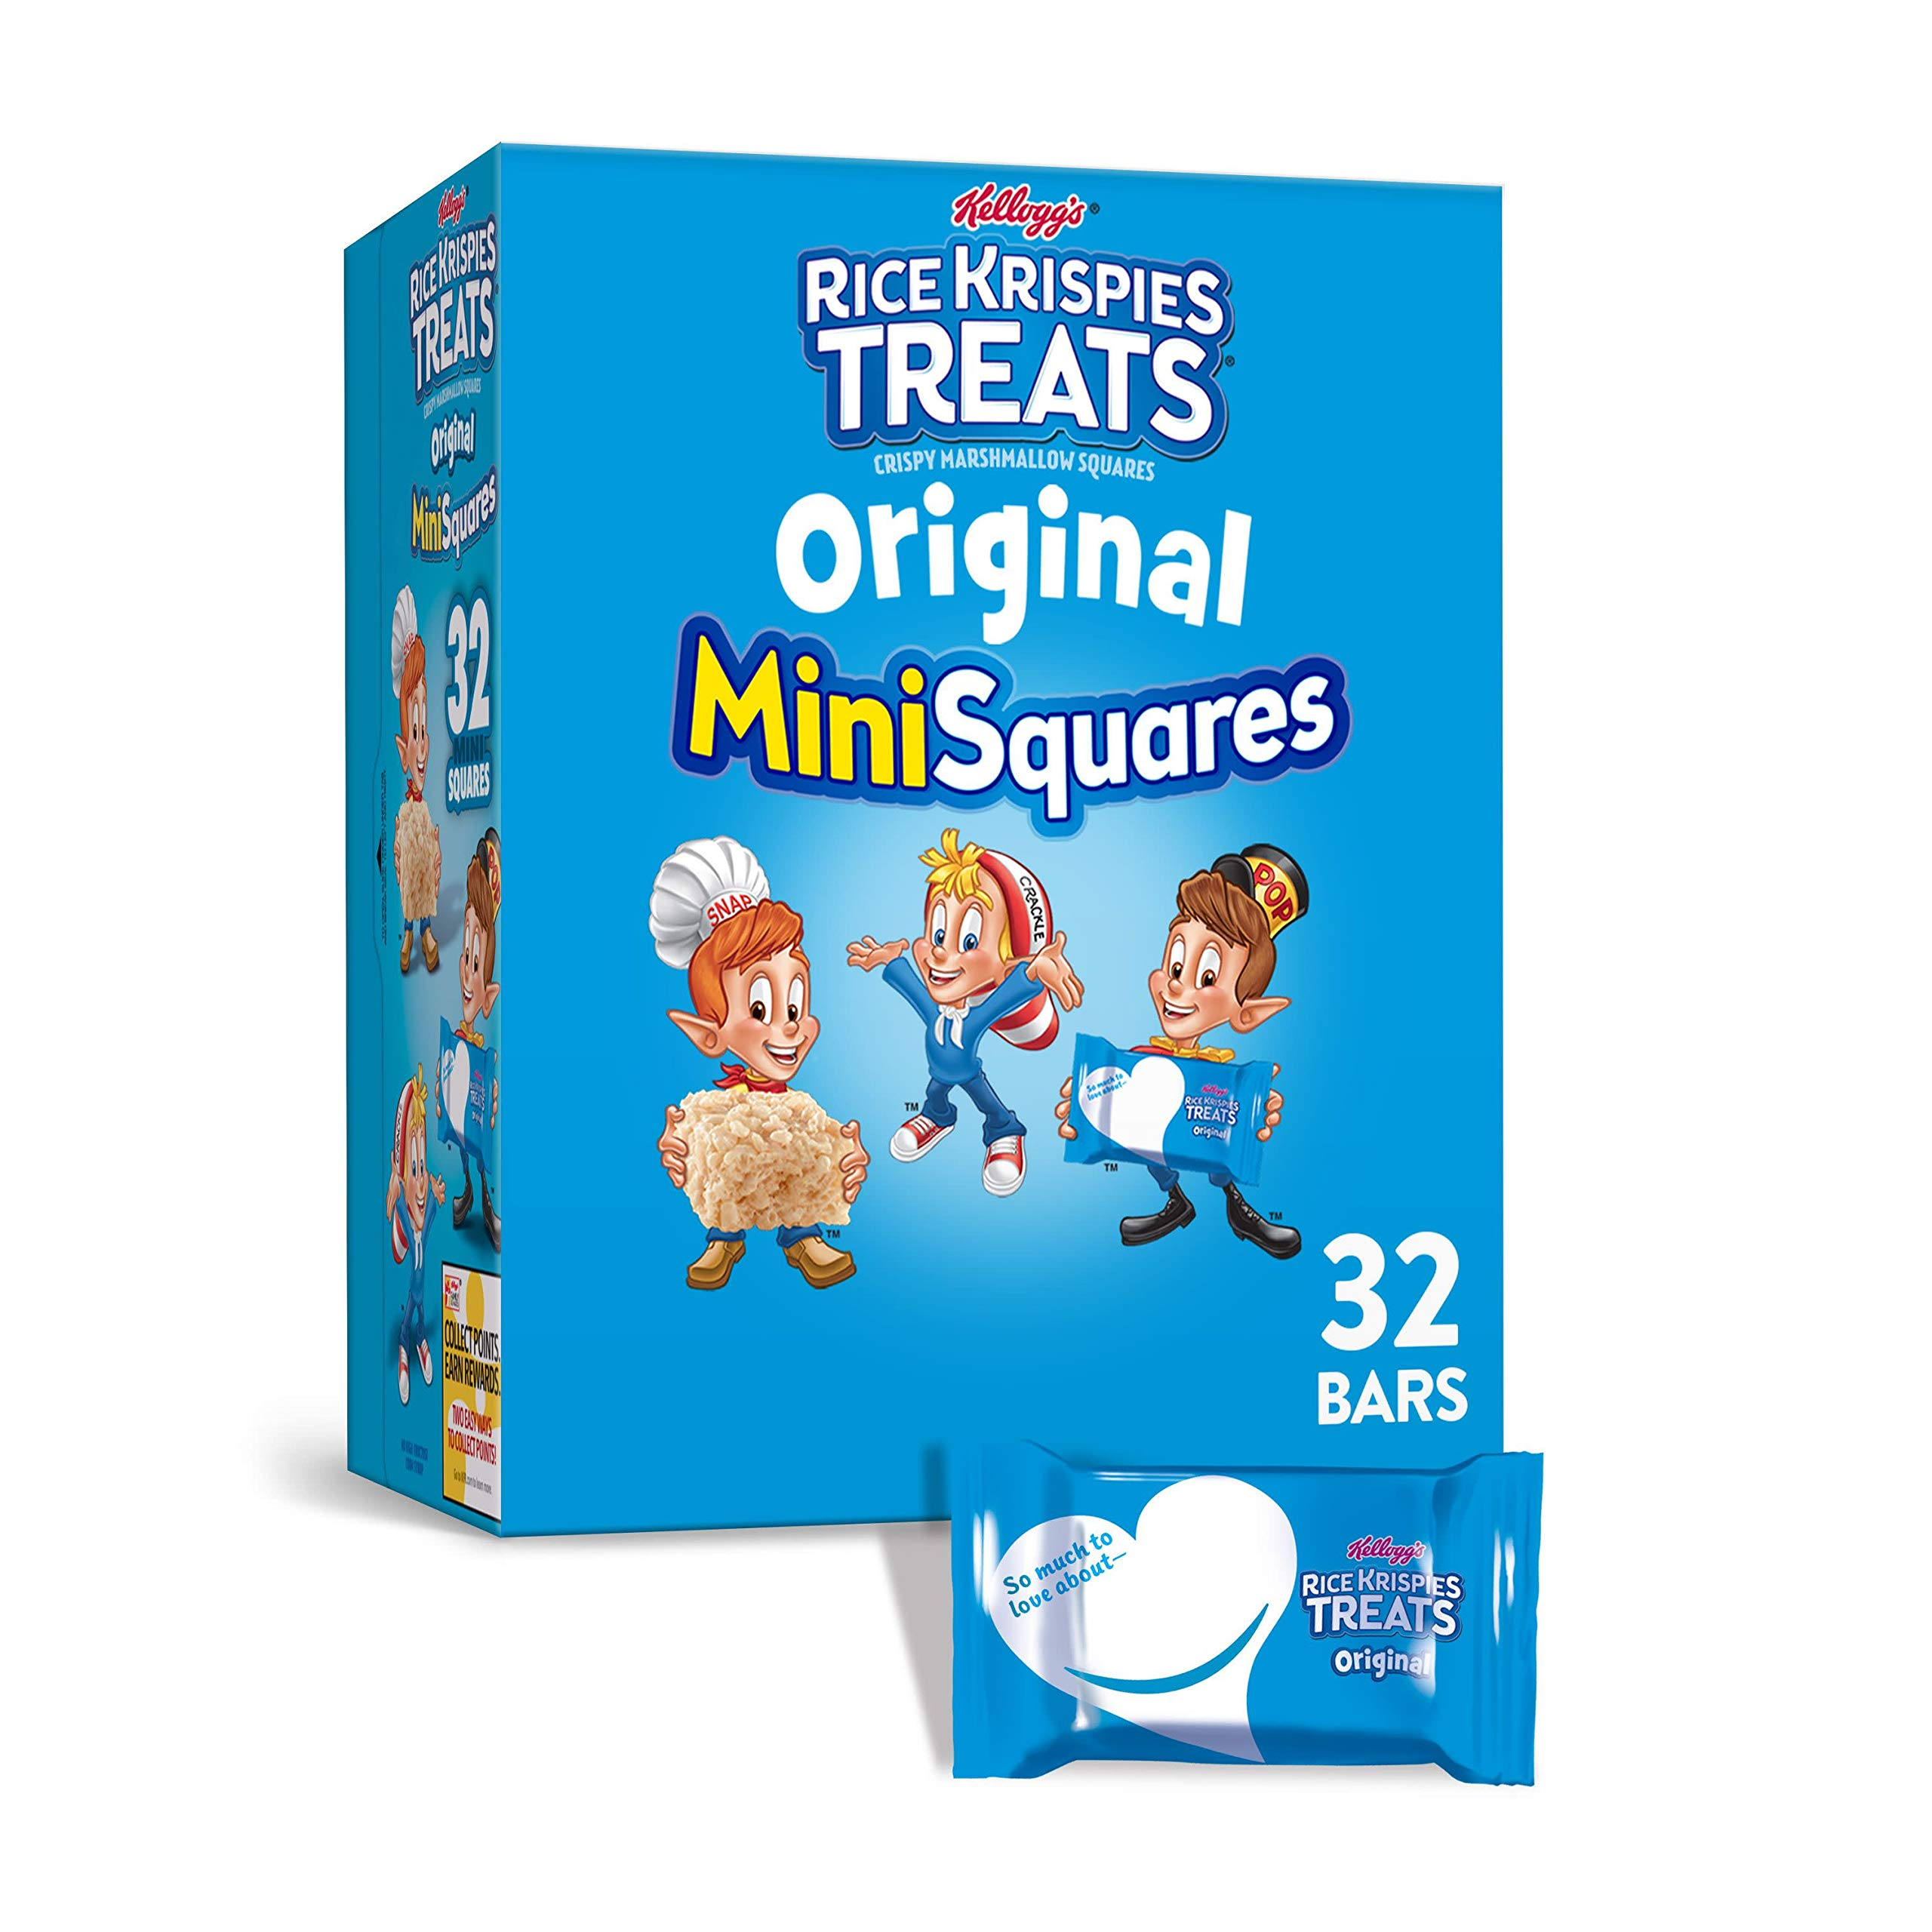 Kellogg's Rice Krispies Treats, Mini Squares, Crispy Marshmallow Squares, Original, 12.4oz Box (32 Count)